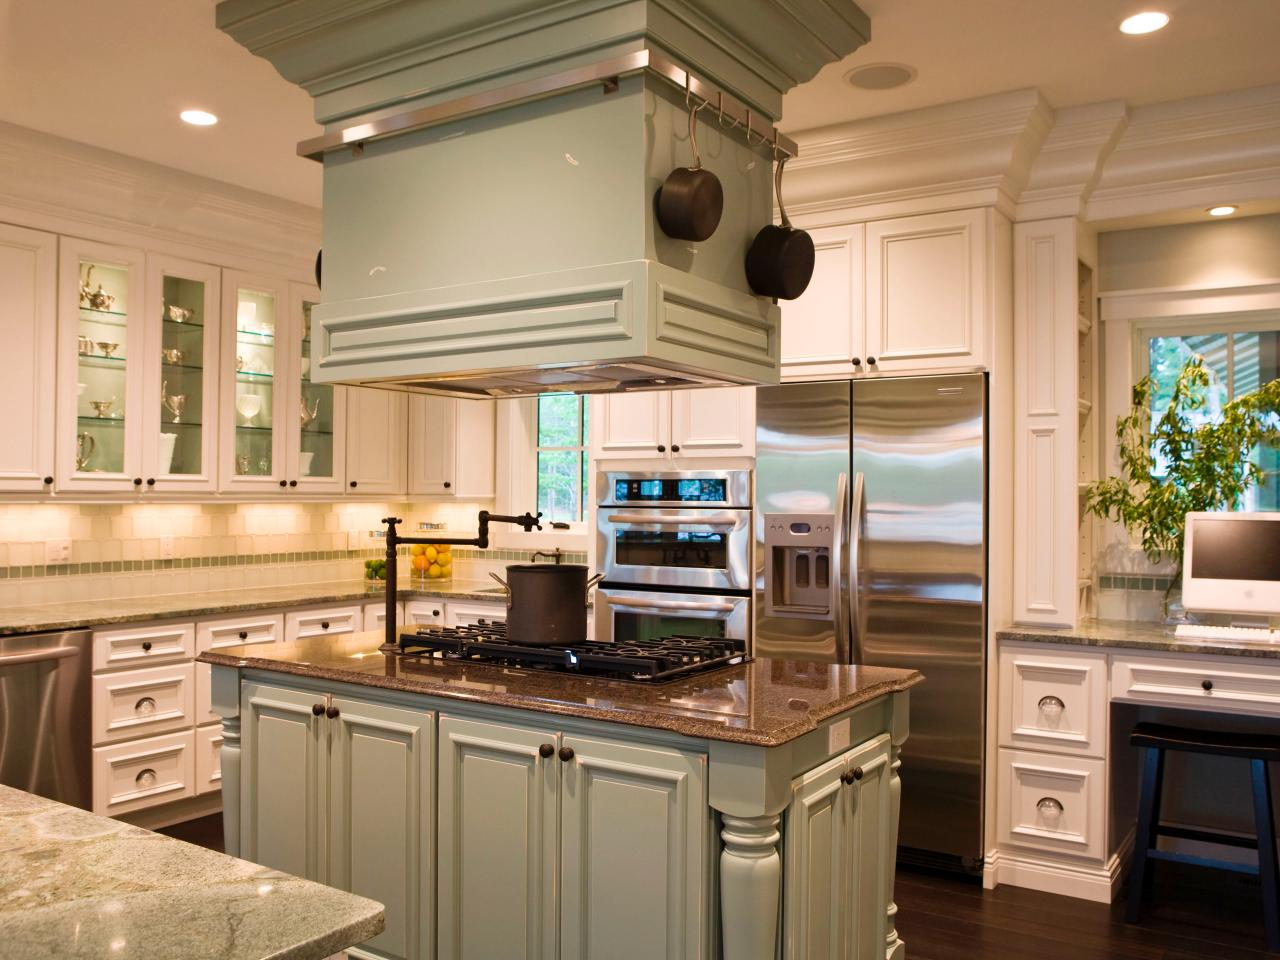 Creating a gourmet kitchen hgtv Kitchen design center stove